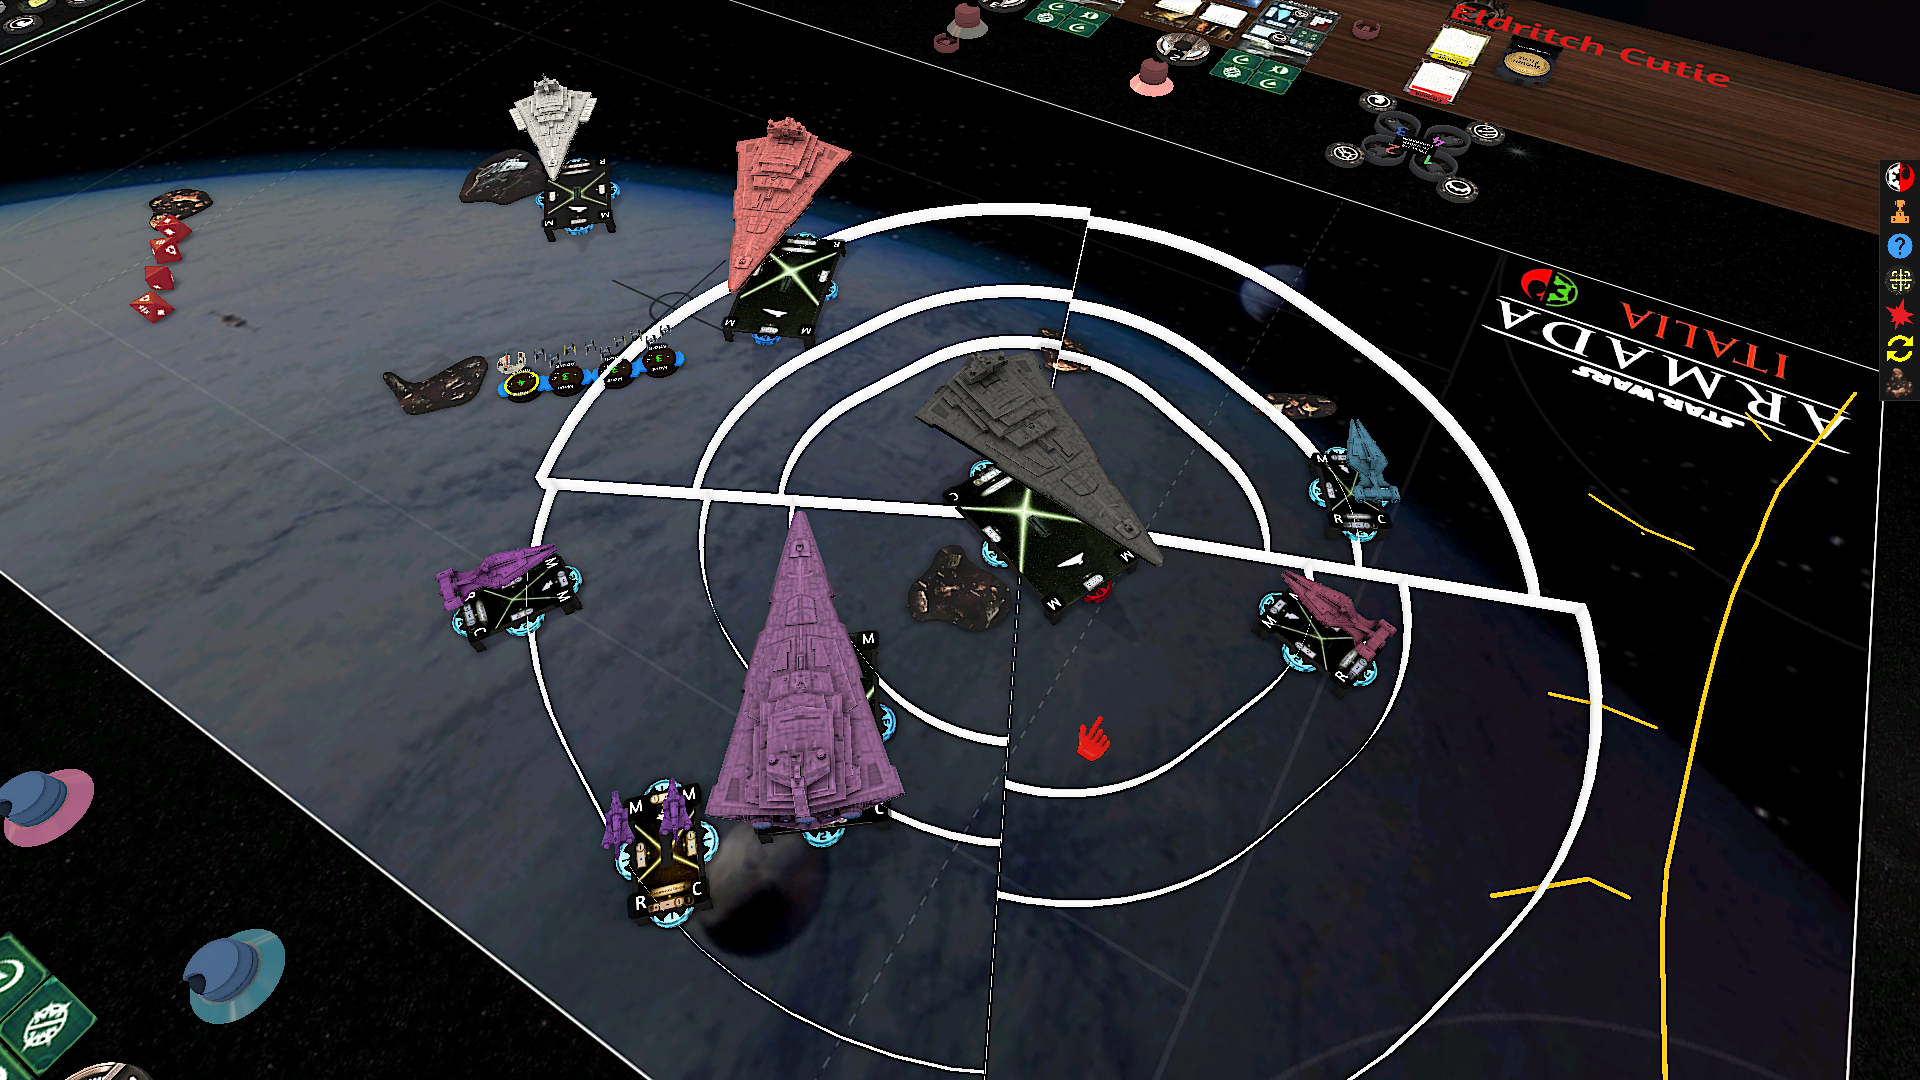 triangular ships fight in space